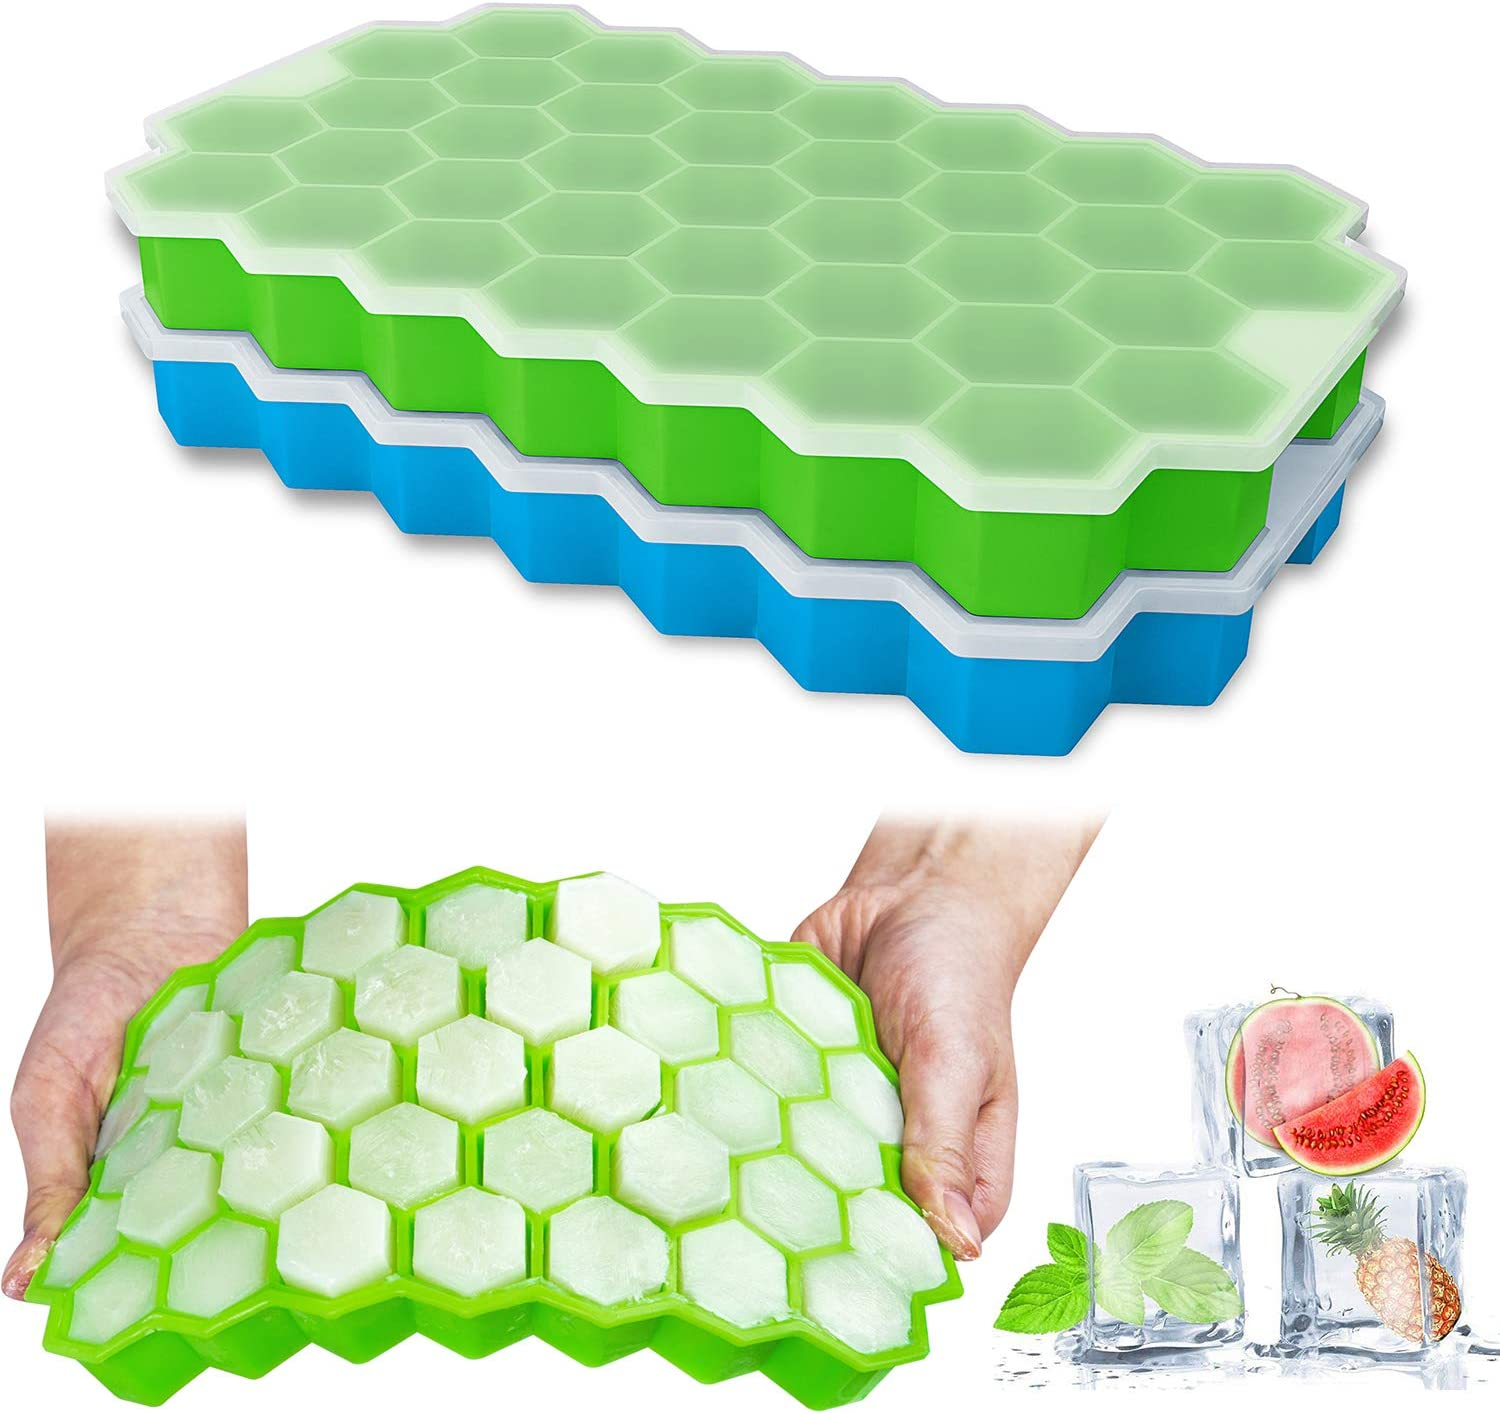 Ice Cube Trays, Ouddy 2 Pack Silicone Ice Cube Molds with Removable Lid, Totally 74-Ice Trays for Whiskey, Cocktail, Stackable Flexible - Green+Blue